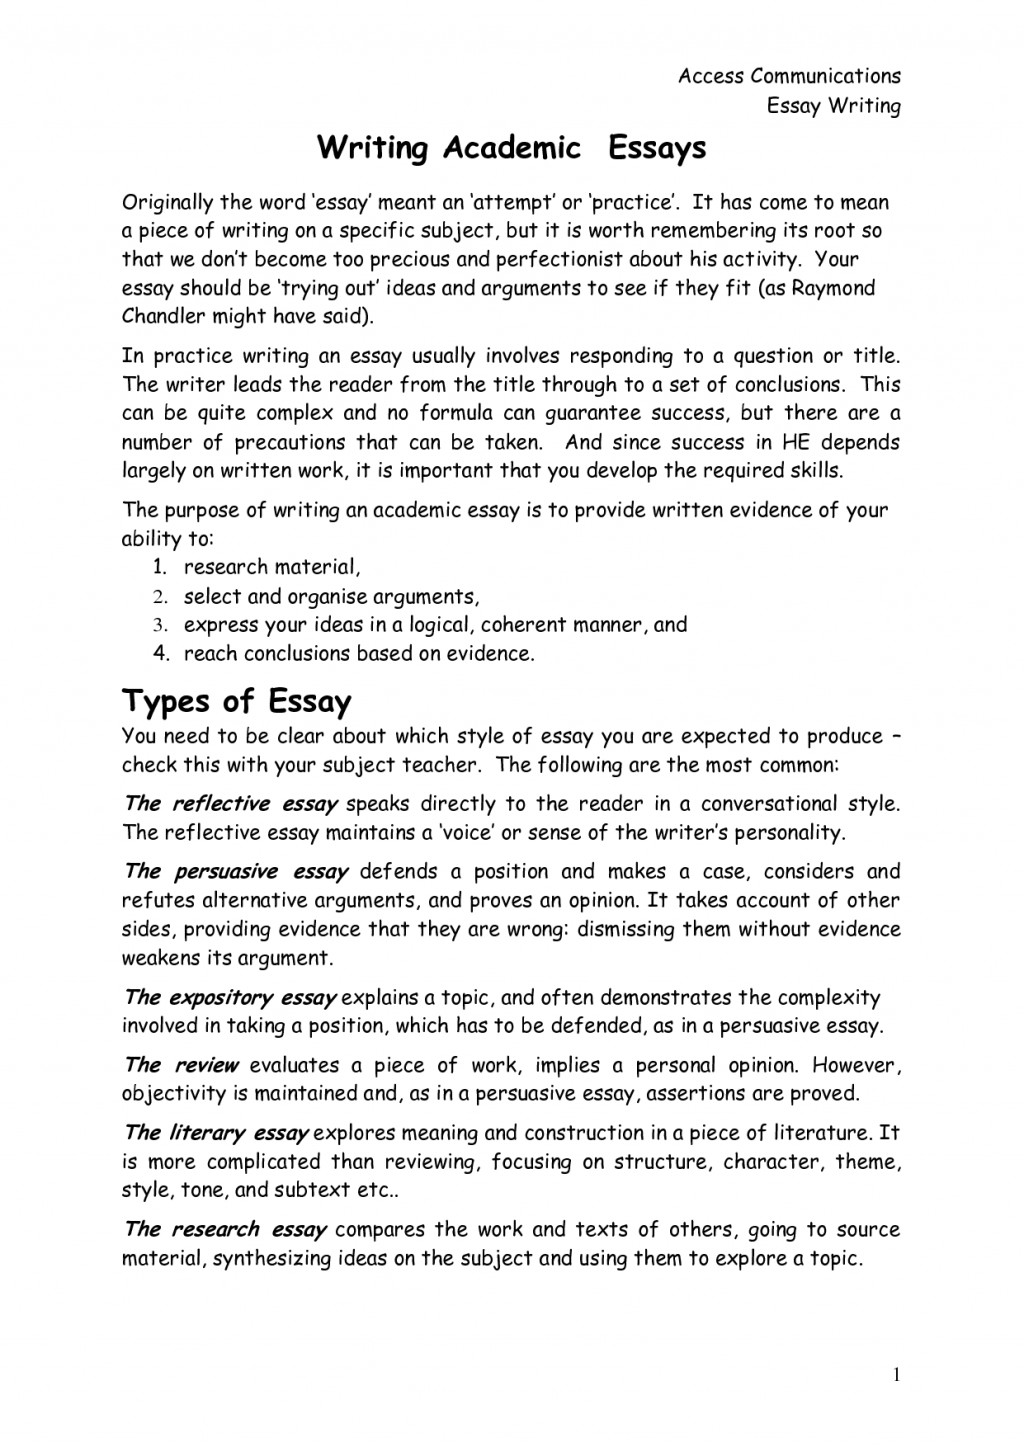 019 Write My Essay For Me Example Surprising Discount Code Cheap Please Large